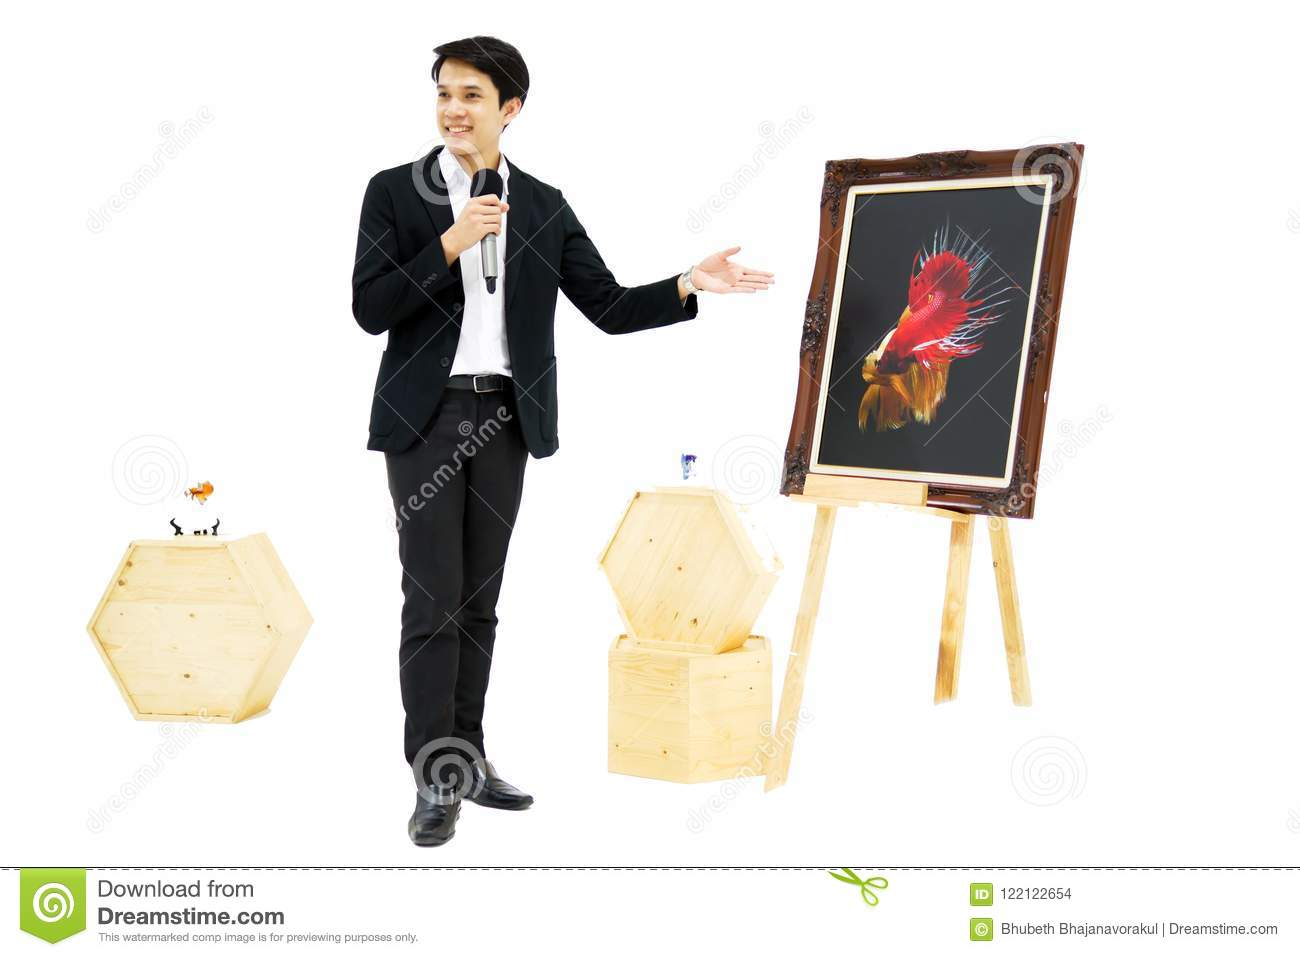 Smart Asian men is presenting the beautiful siamese fighting fish (betta) photo in the museum exhibition.